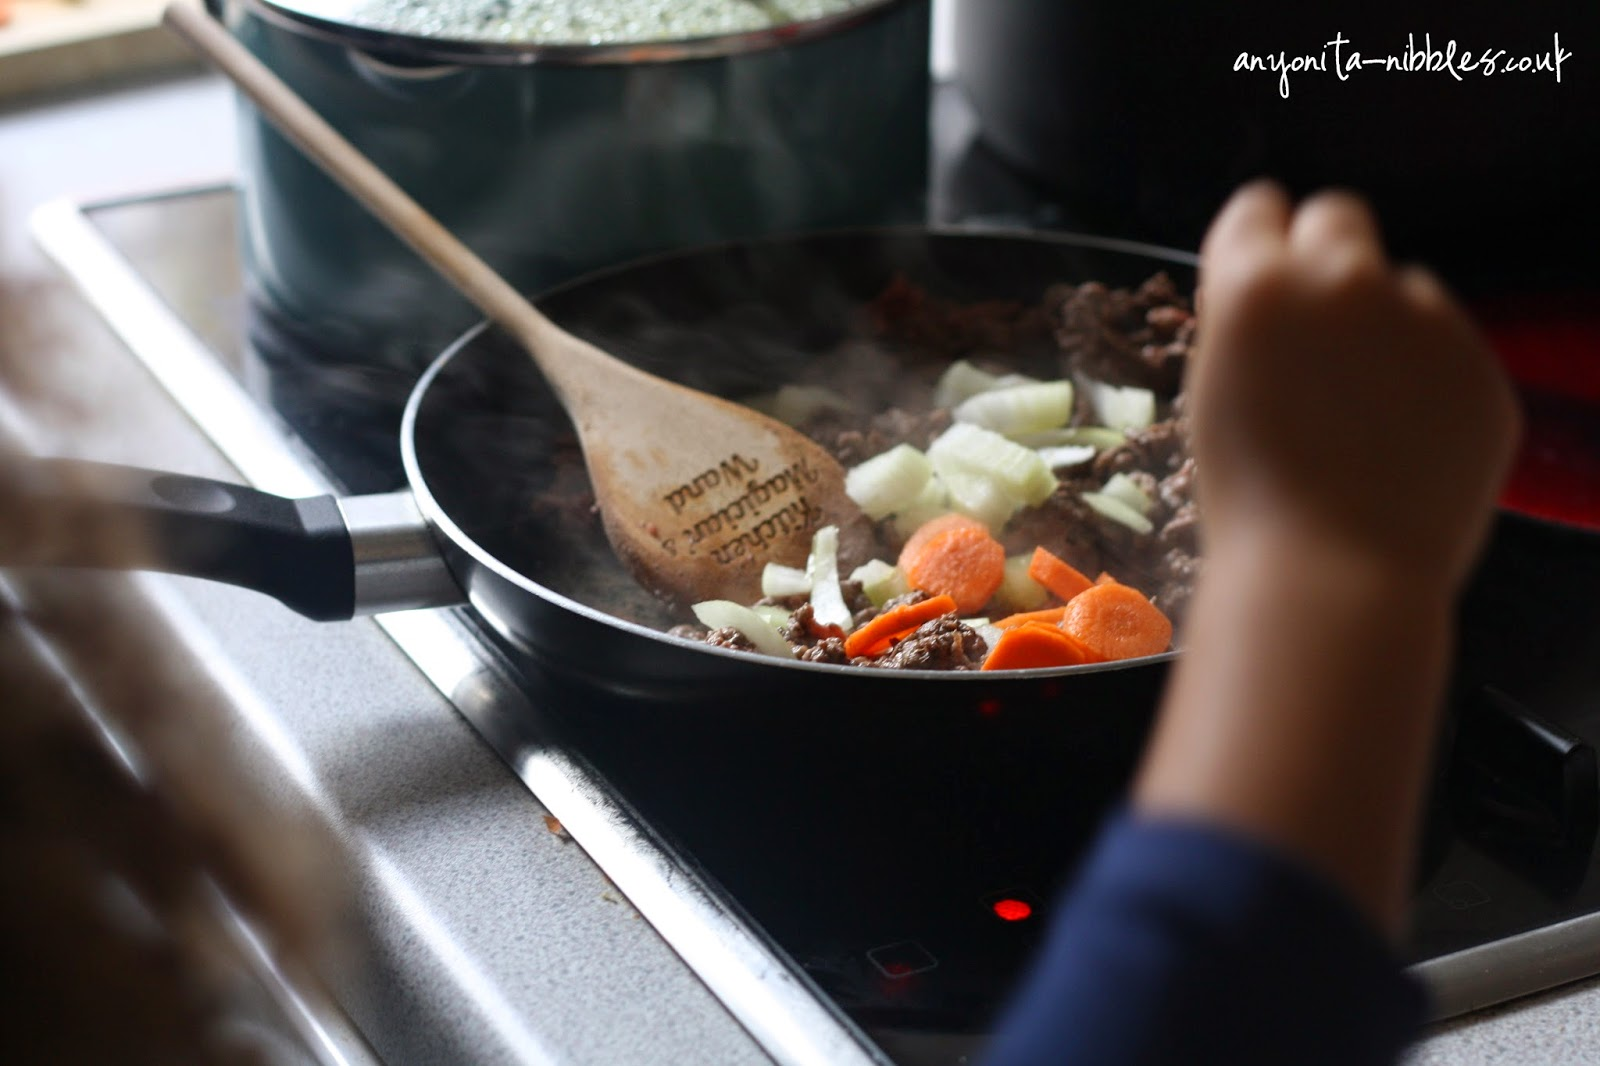 Adding vegetables for cottage pie from Anyonita-nibbles.co.uk